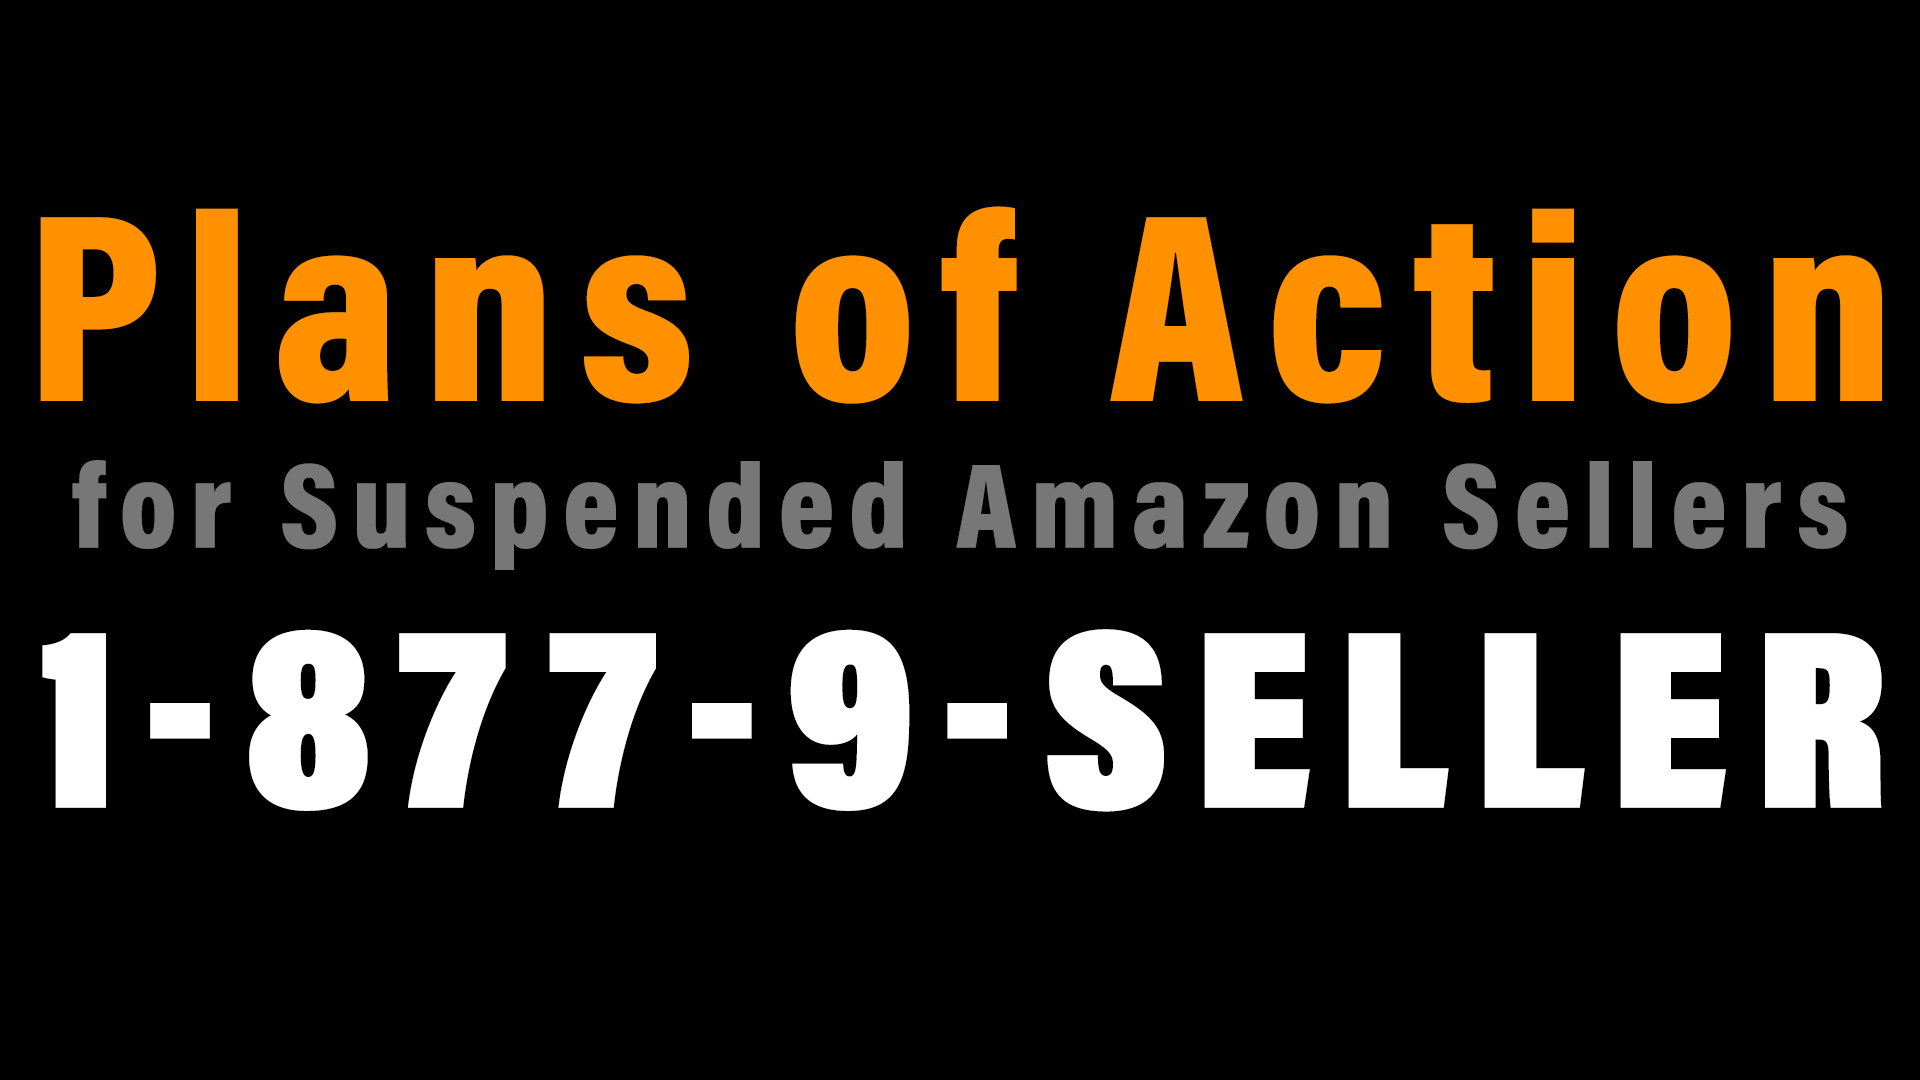 Plans of Action for Amazon